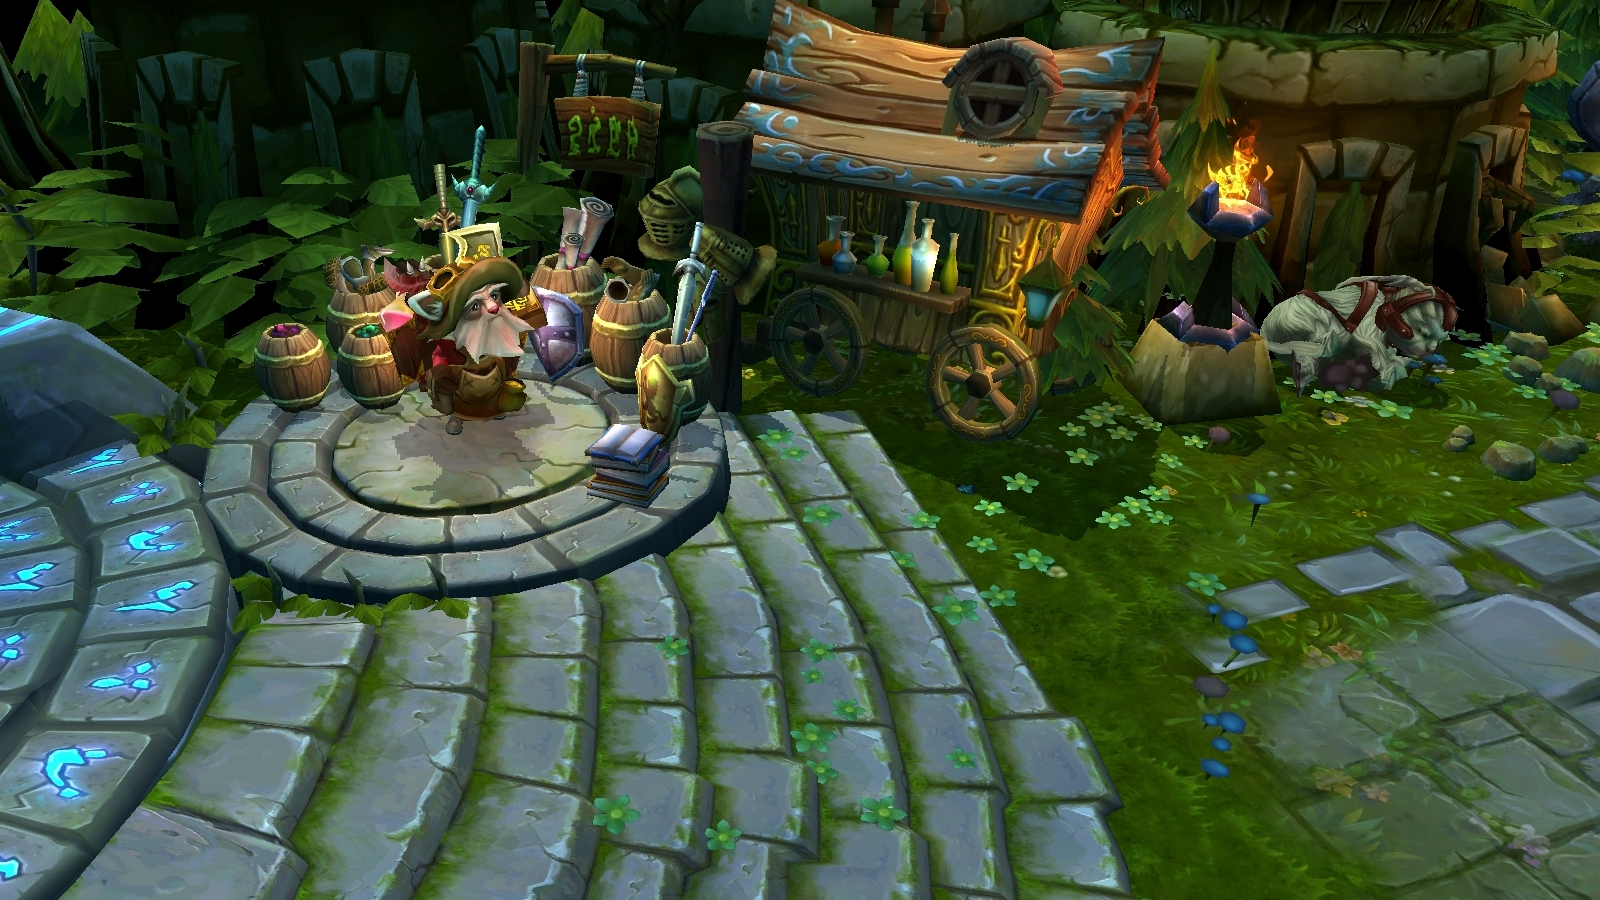 Summoners rift 1.1, click for larger version